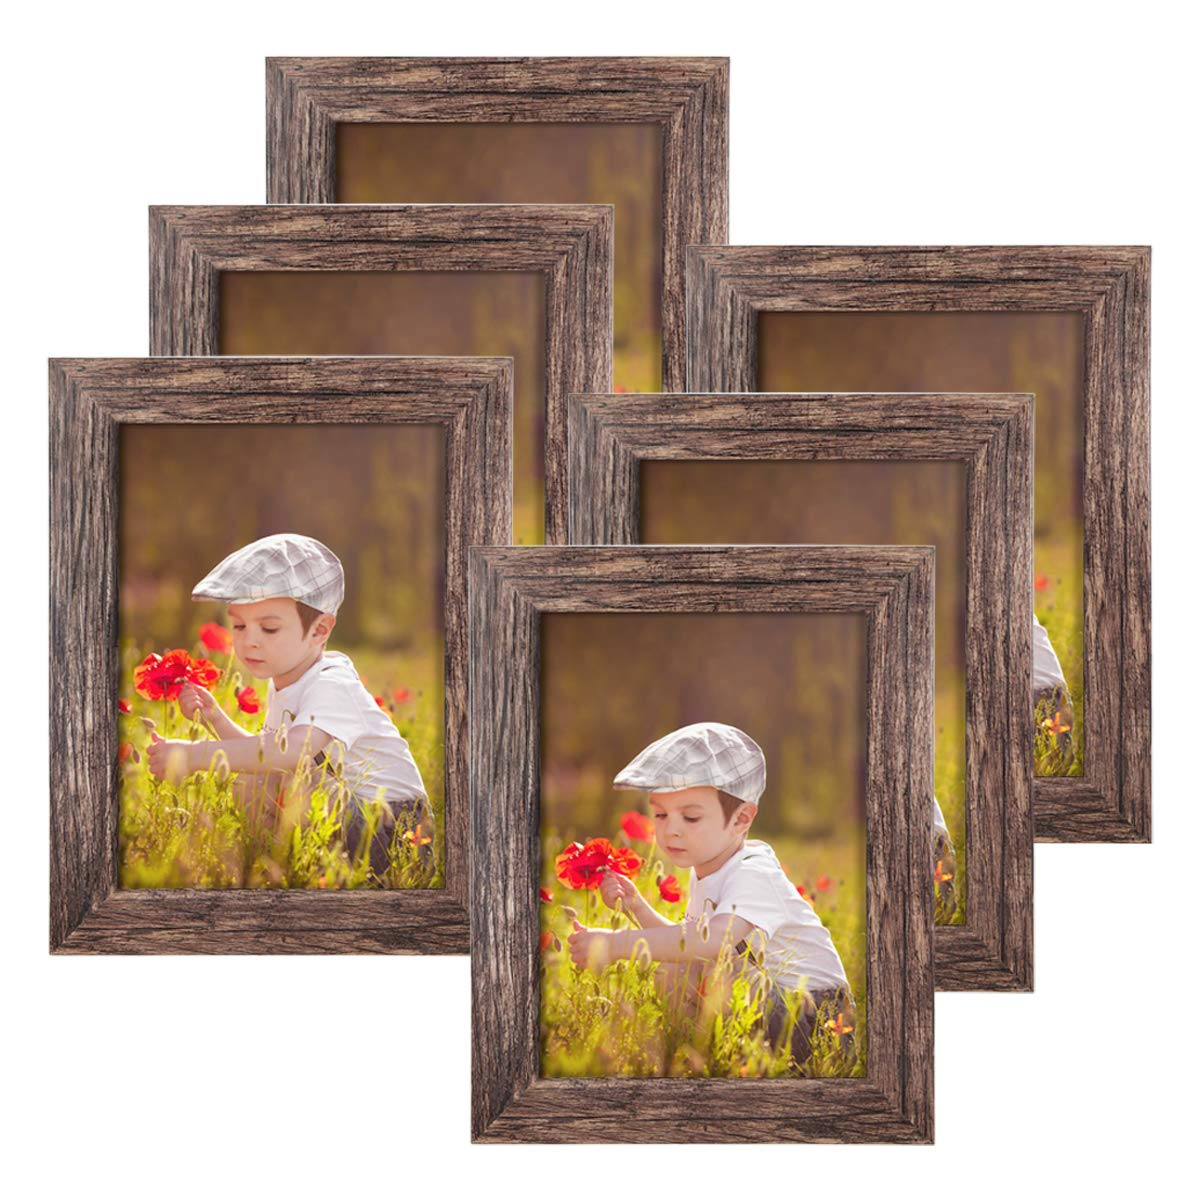 Q.Hou 5x7 Picture Frame Wood Pattern Rustic Brown Photo Frames Packs 6 with High Definition Glass for Tabletop or Wall Decor (QH-PF5X7-BR) by Q.Hou